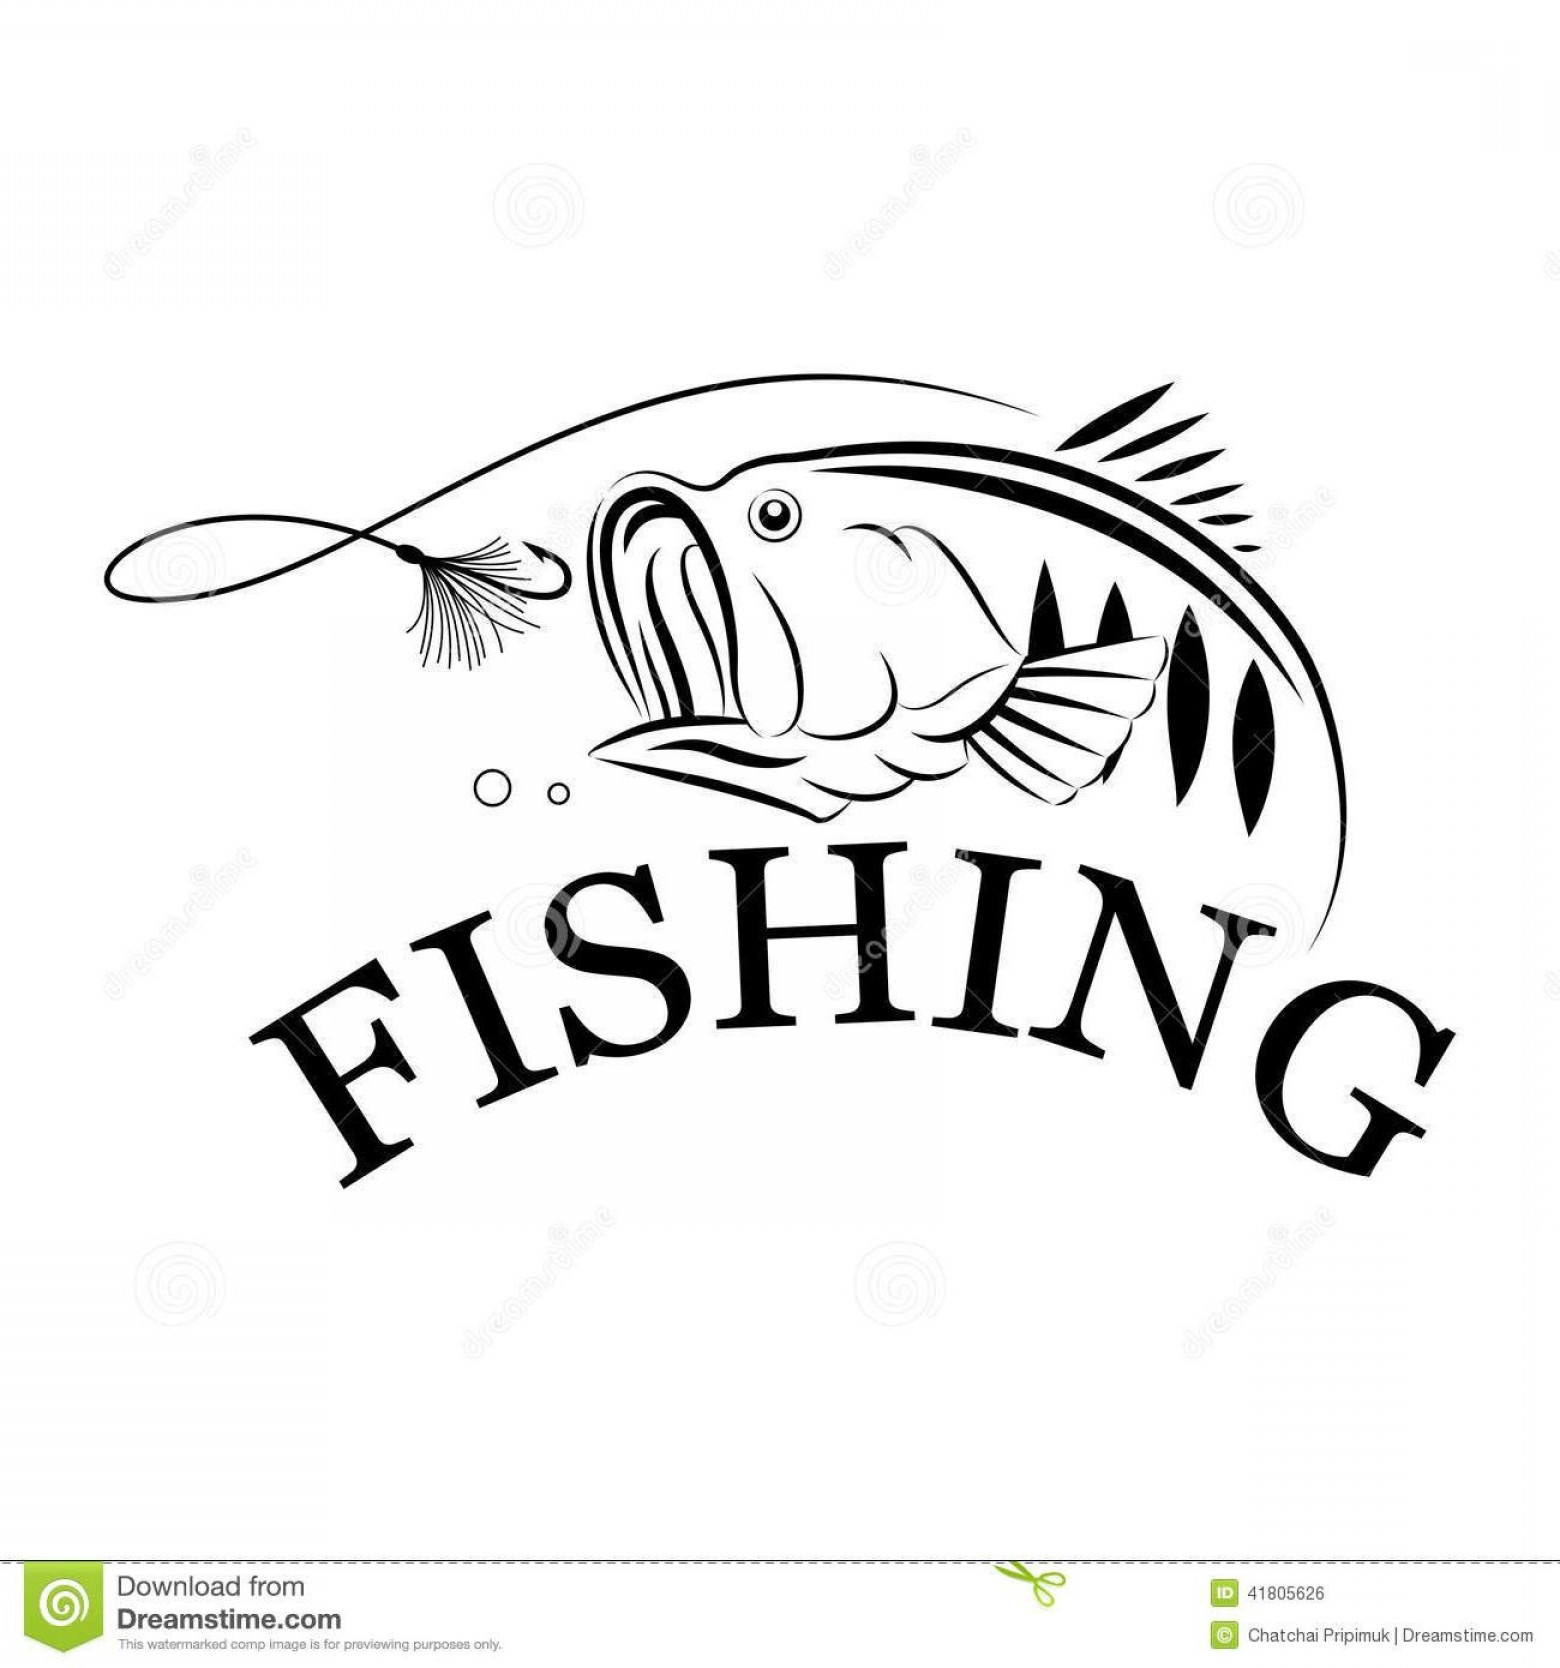 Fish Vector Graphic: Top Fish Graphic Design Vector Drawing